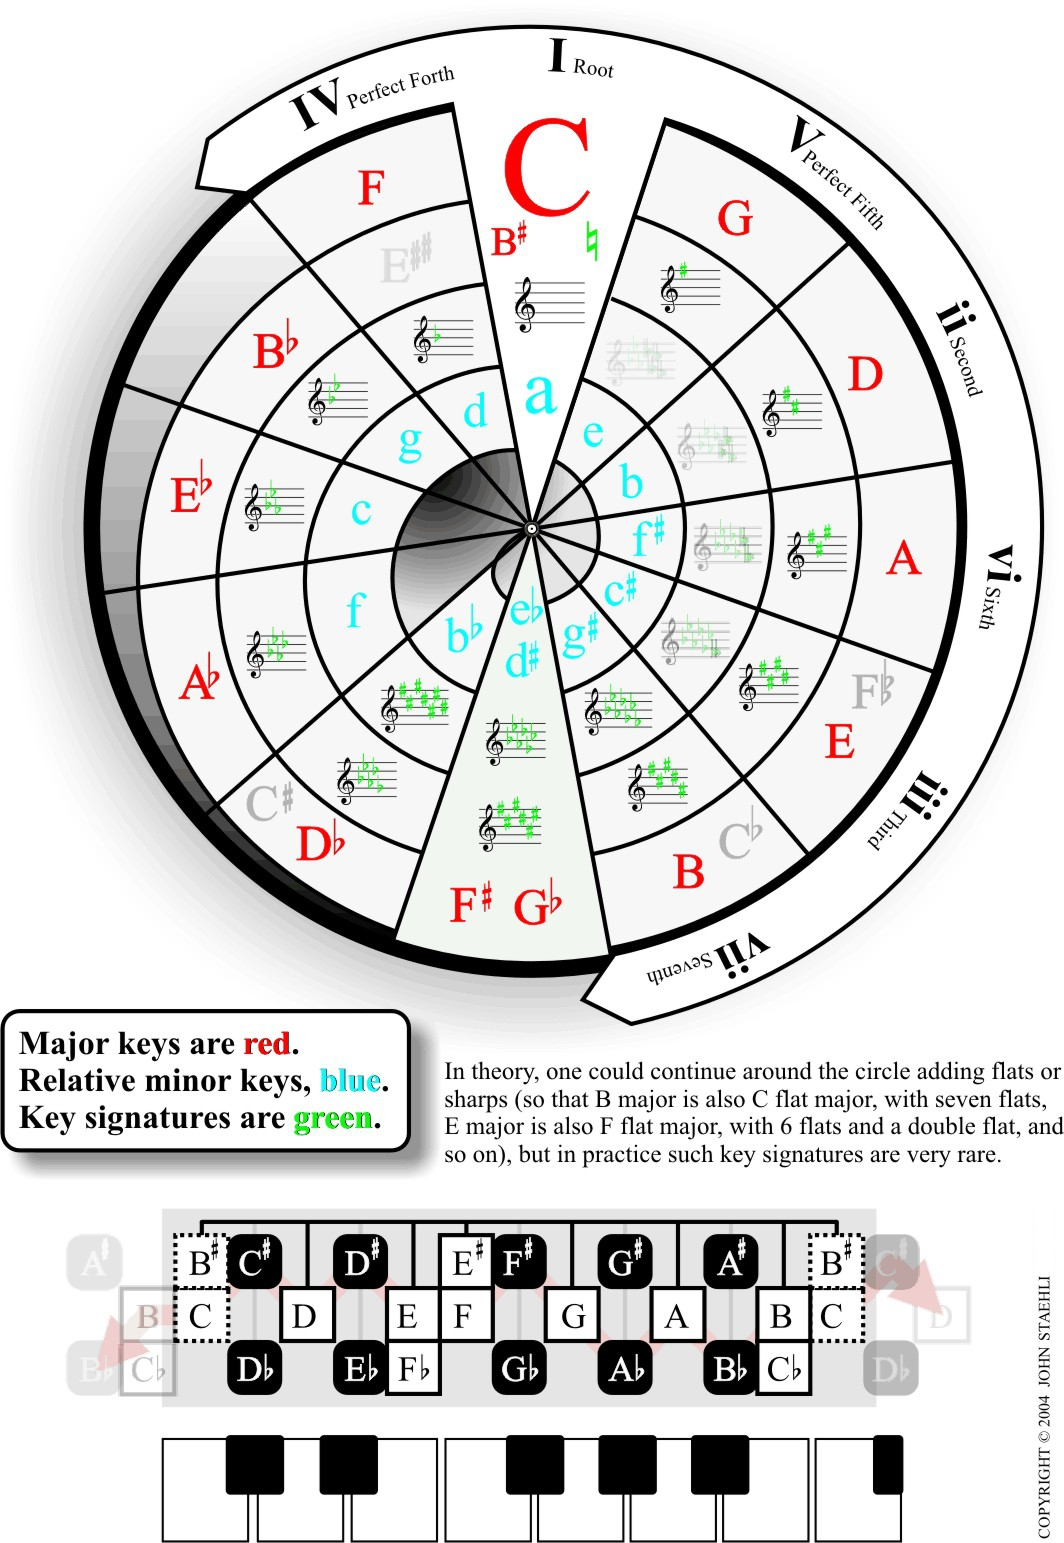 how to read the key circle chart